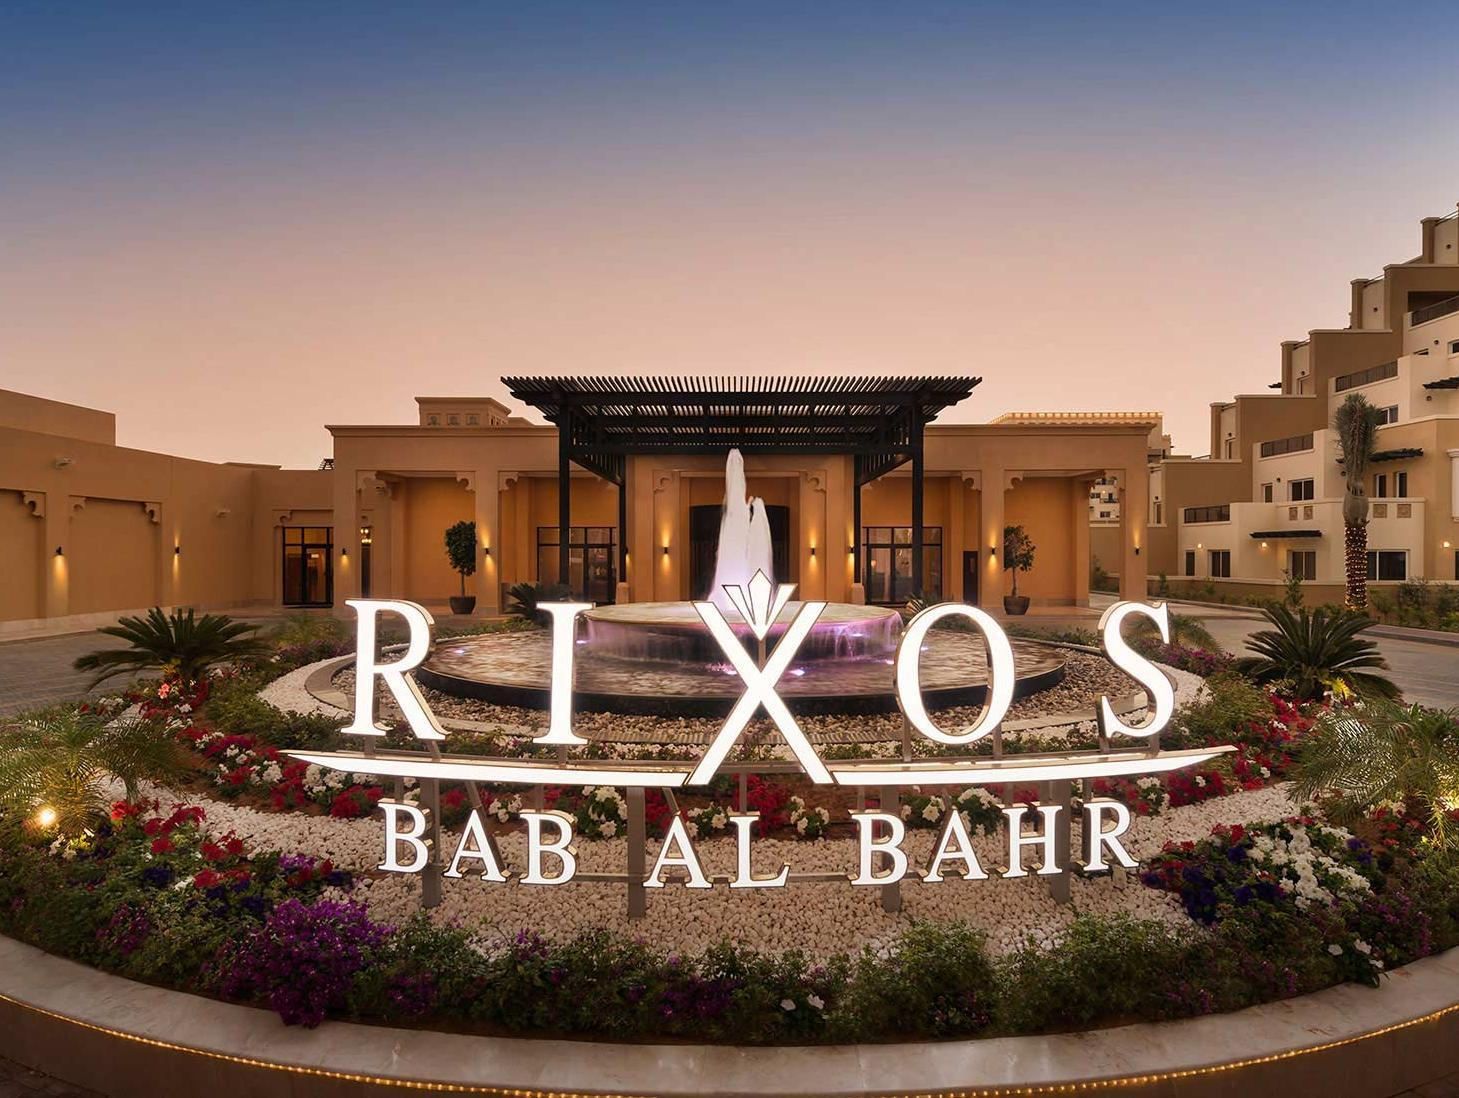 Al Marfa' United Arab Emirates  City new picture : Rixos Bab Al Bahr Hotel Ras Al Khaimah United Arab Emirates Photos ...